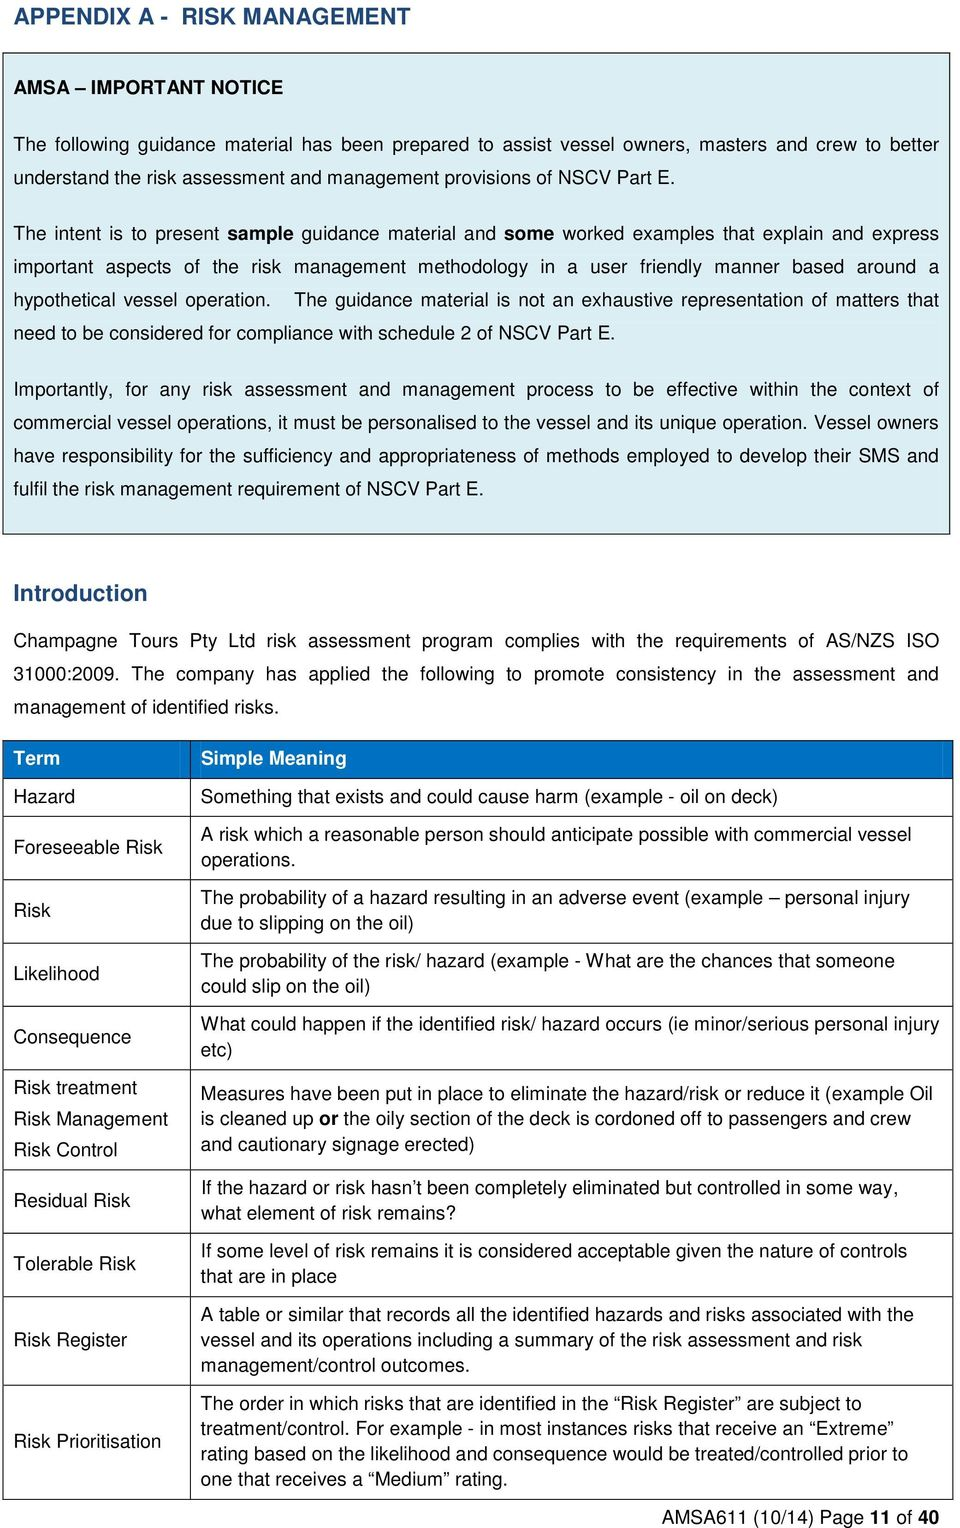 SAMPLE SAFETY MANAGEMENT SYSTEM DOCUMENT  A guide to assist